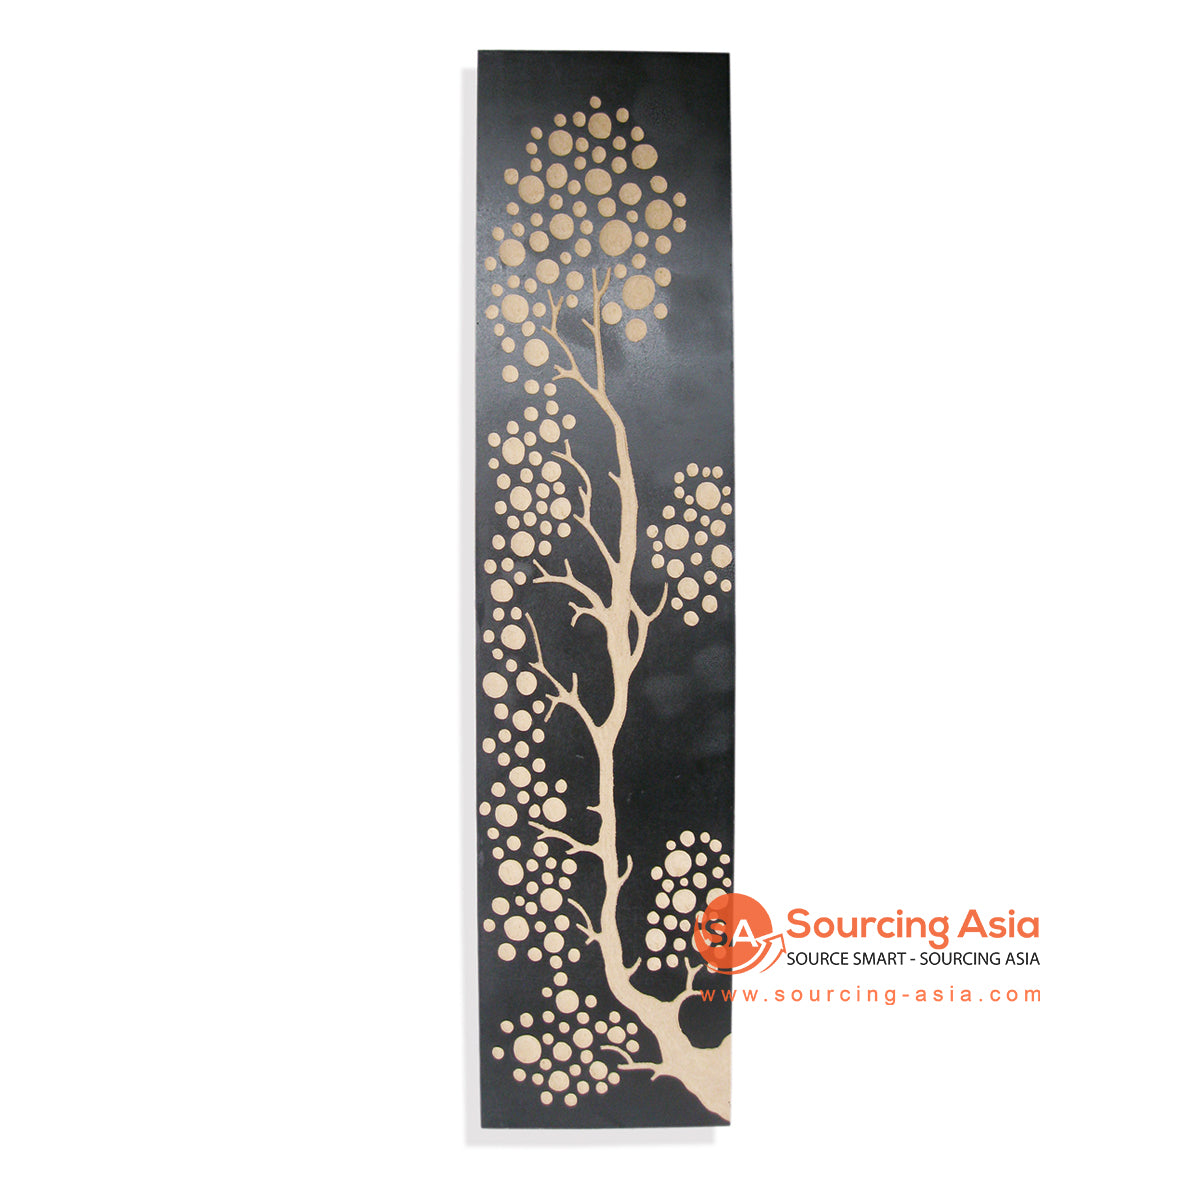 EXC002-30X120 WALL DECORATION